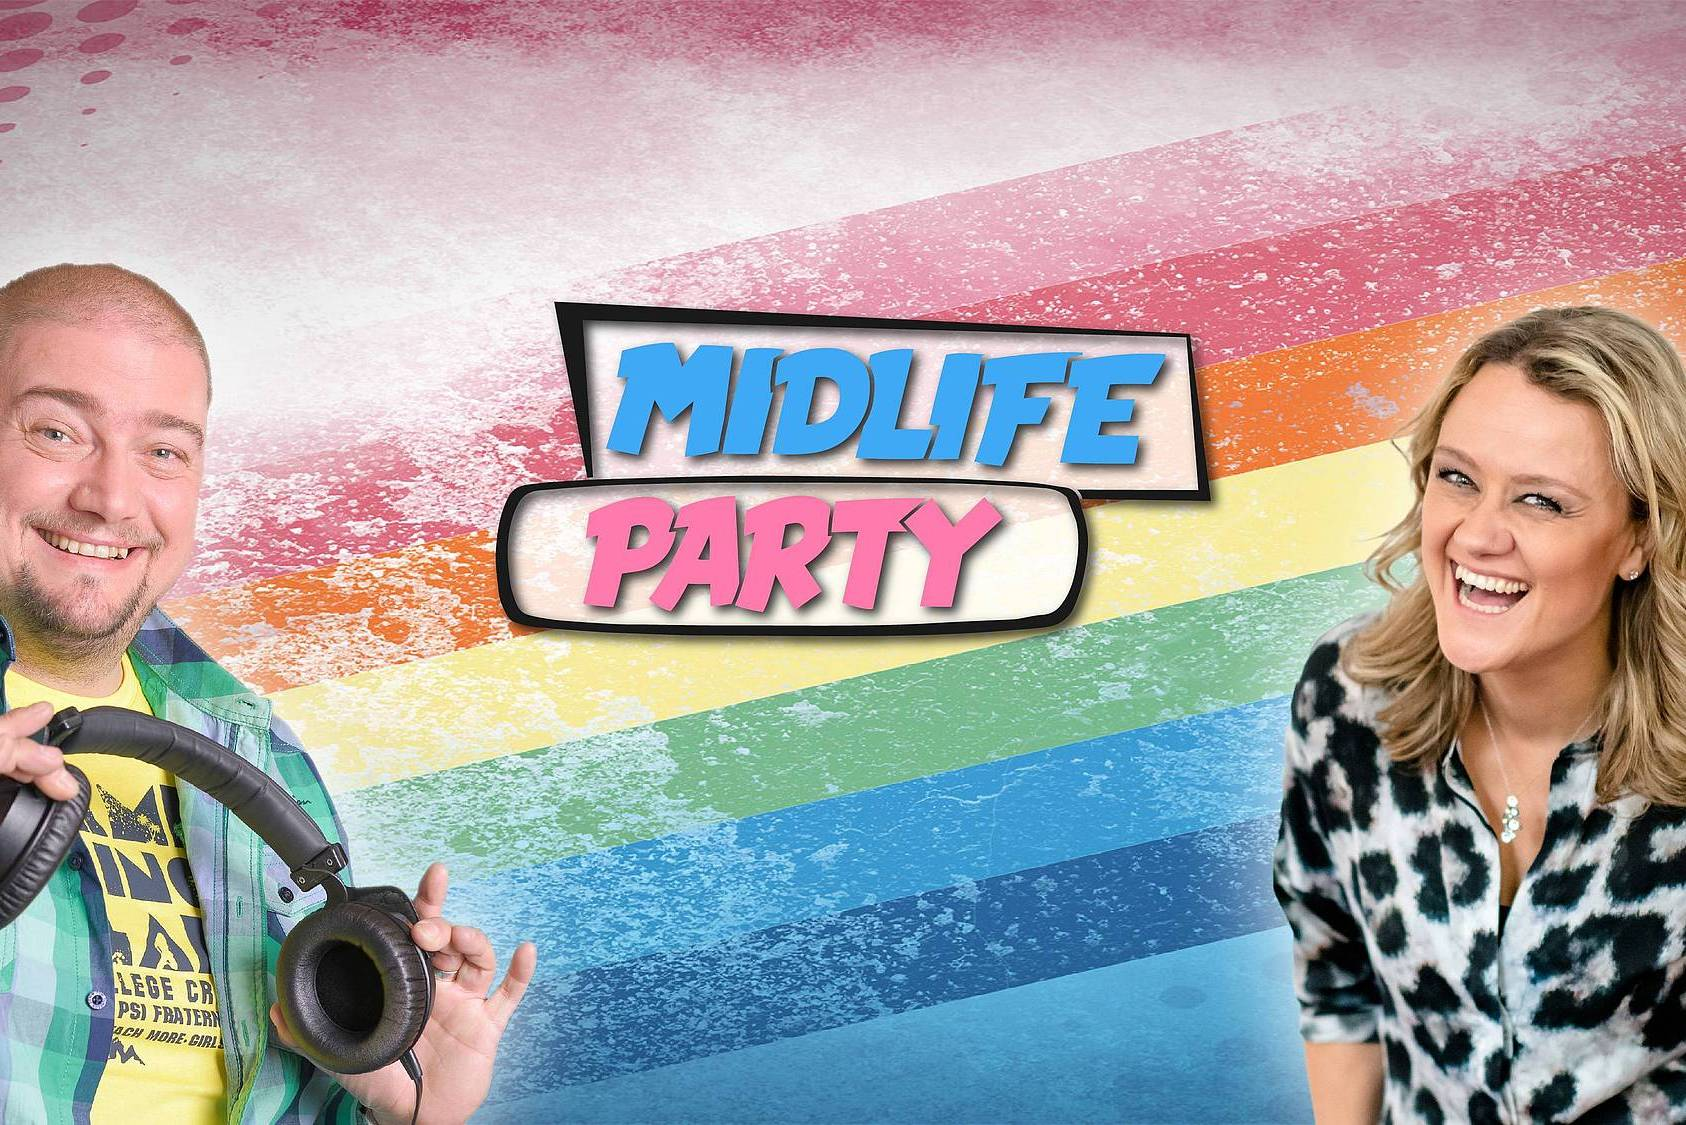 Midlife Party